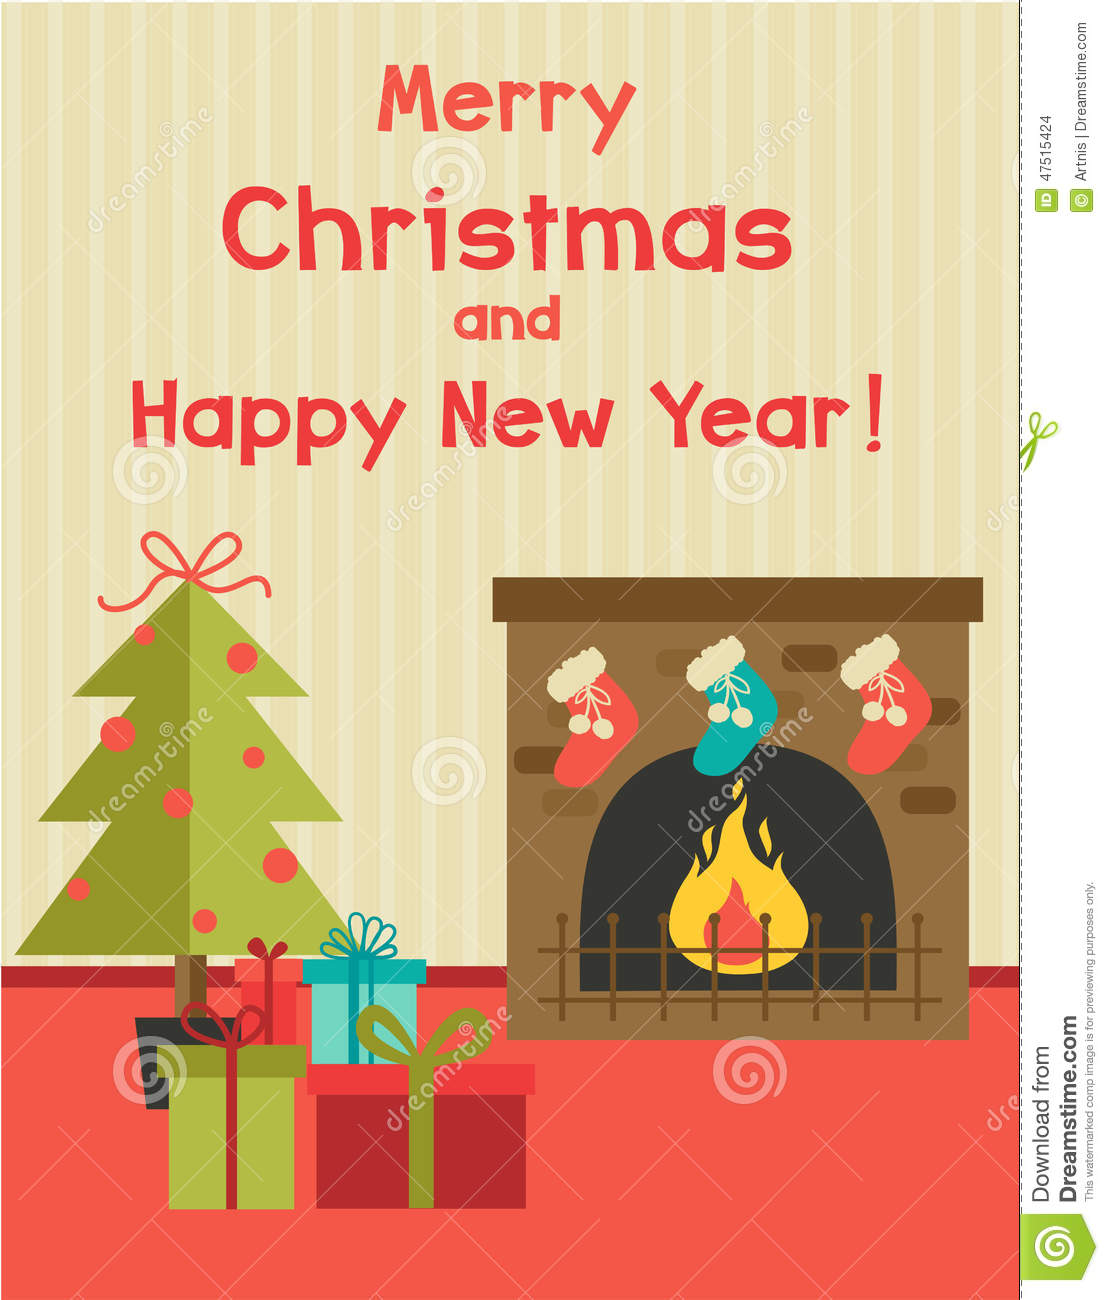 vector cartoon holiday illustration with fireplace new year tree